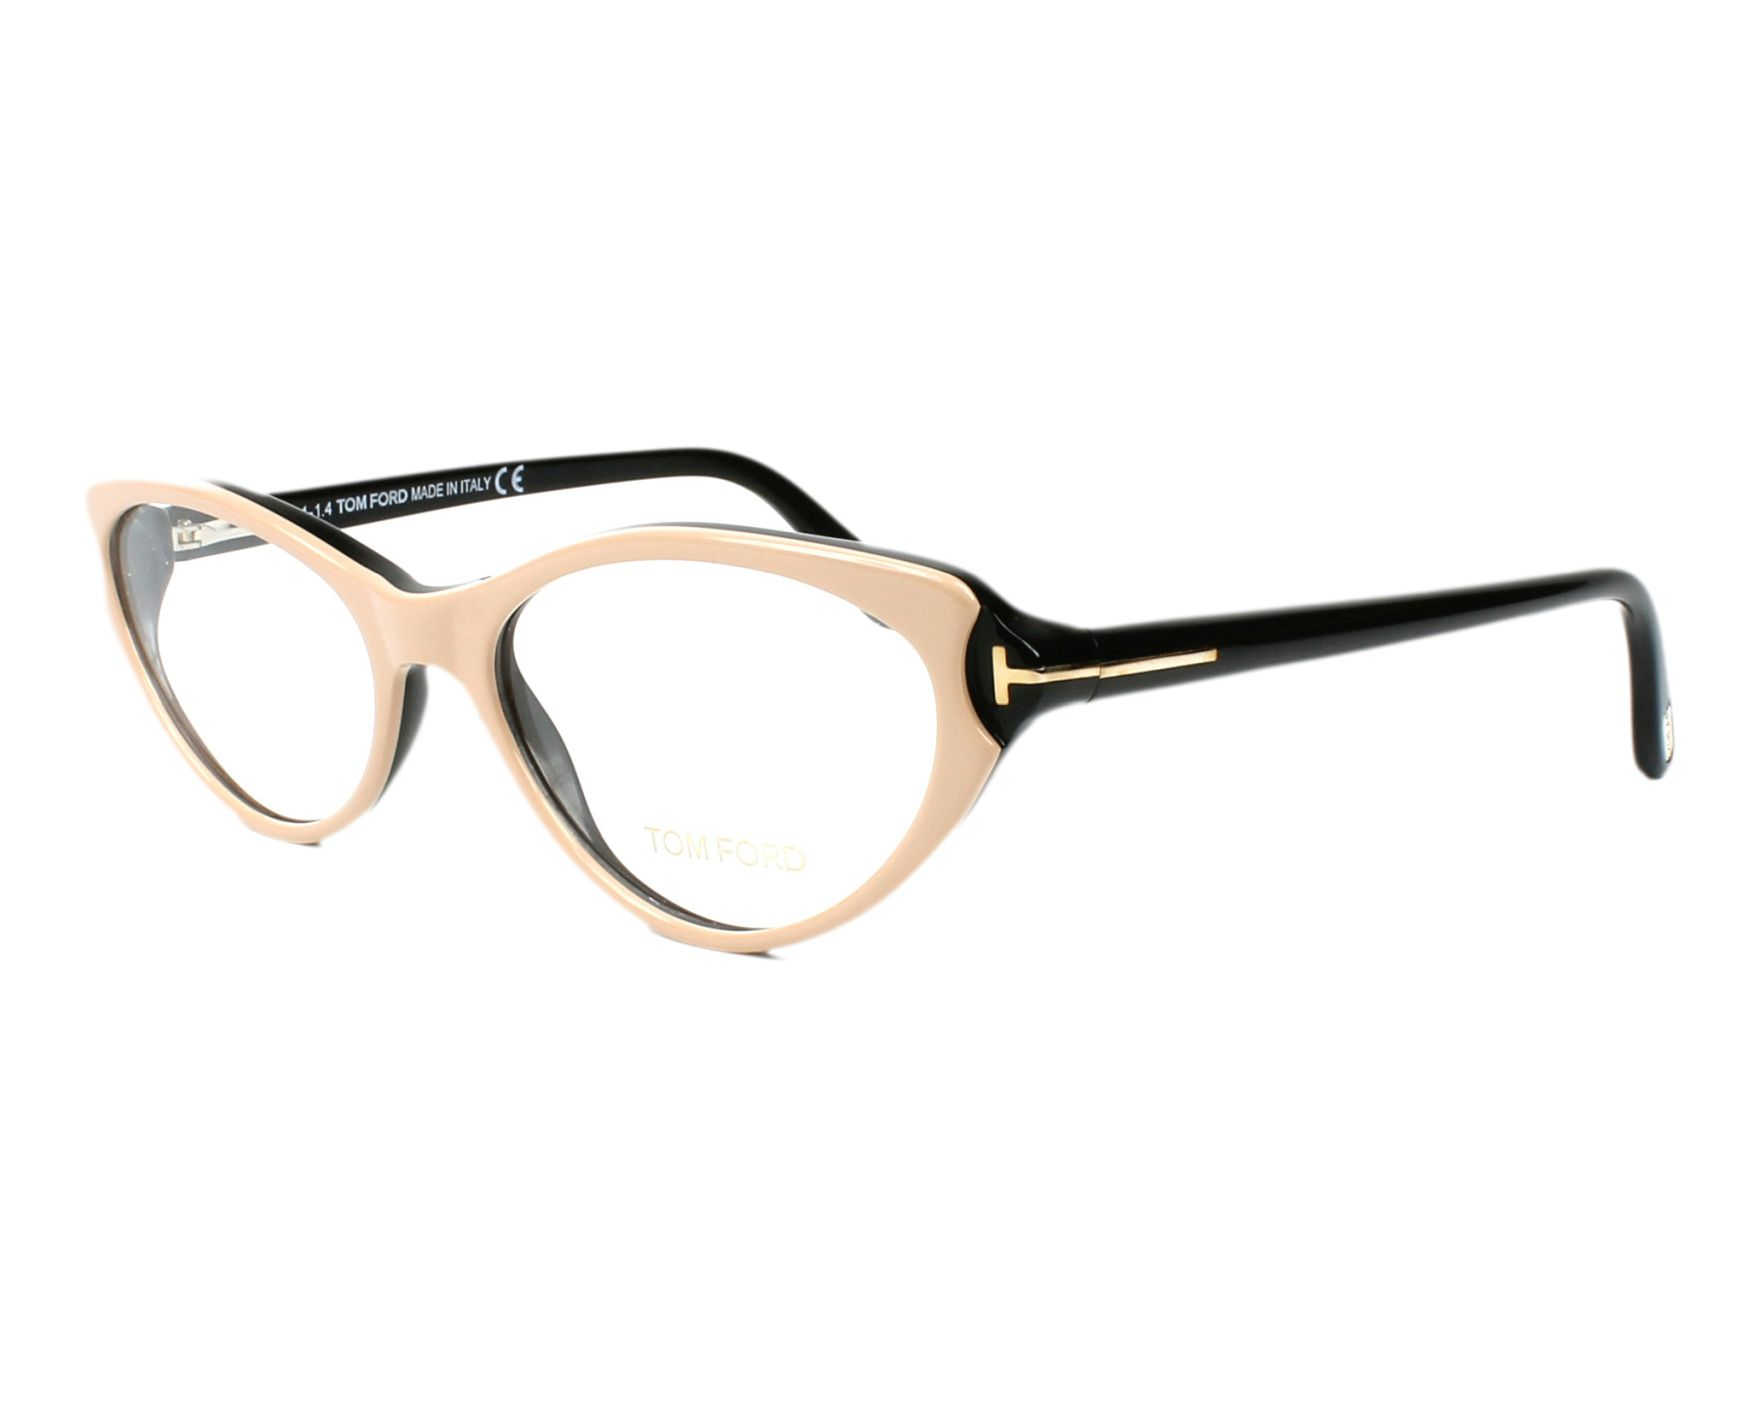 27c2f3ab0b Lunettes Vue Homme Tom Ford « One More Soul